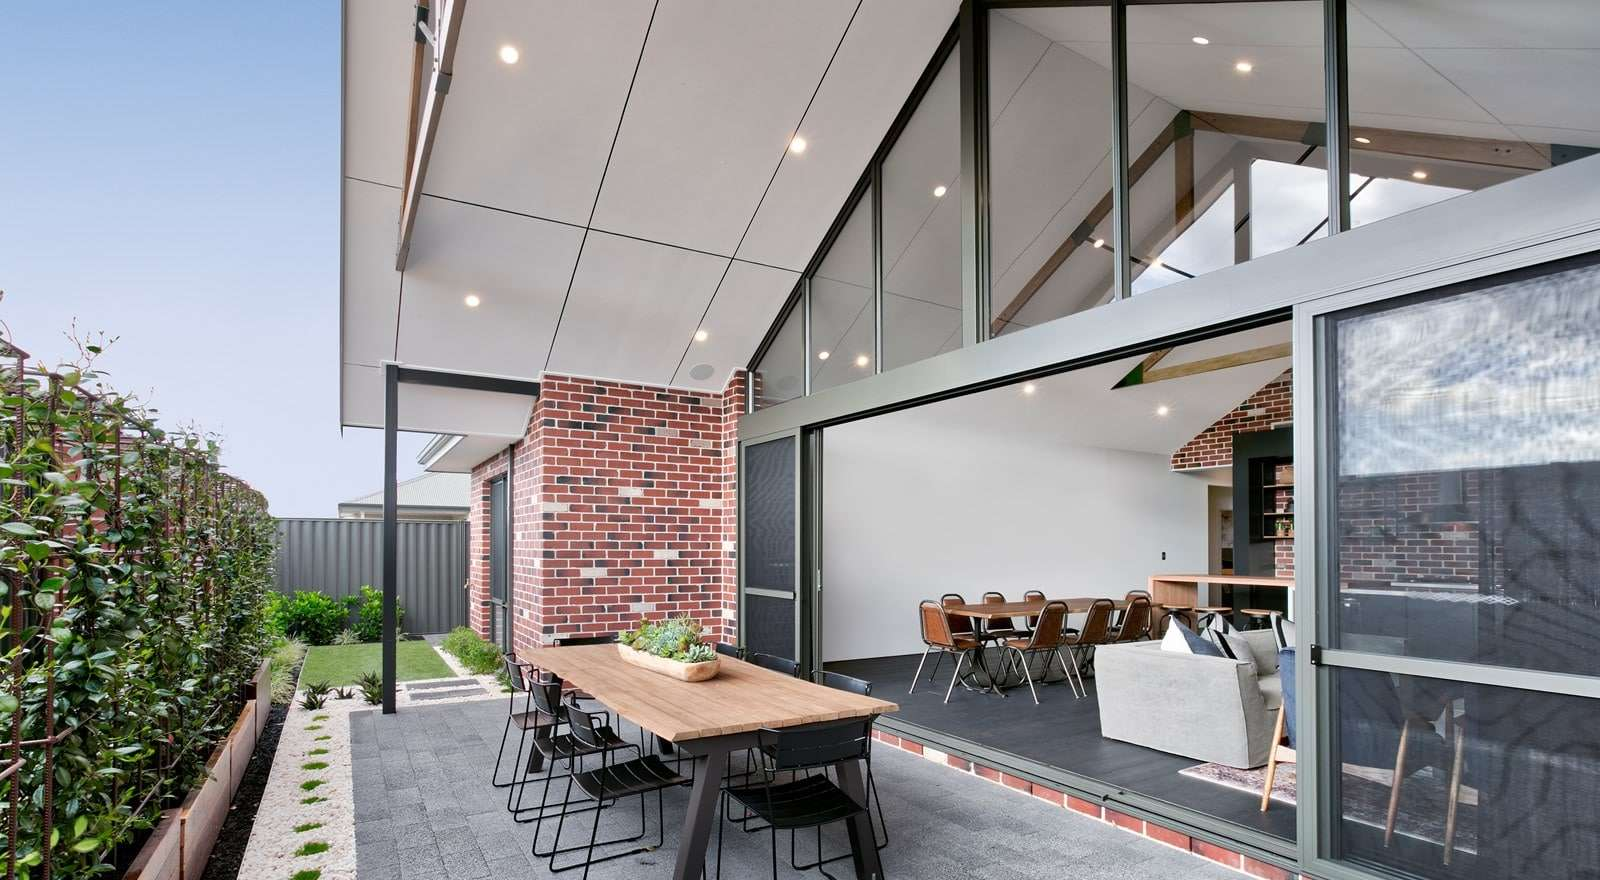 Large sliding doors connect the living area with the alfresco for outdoor entertaining.